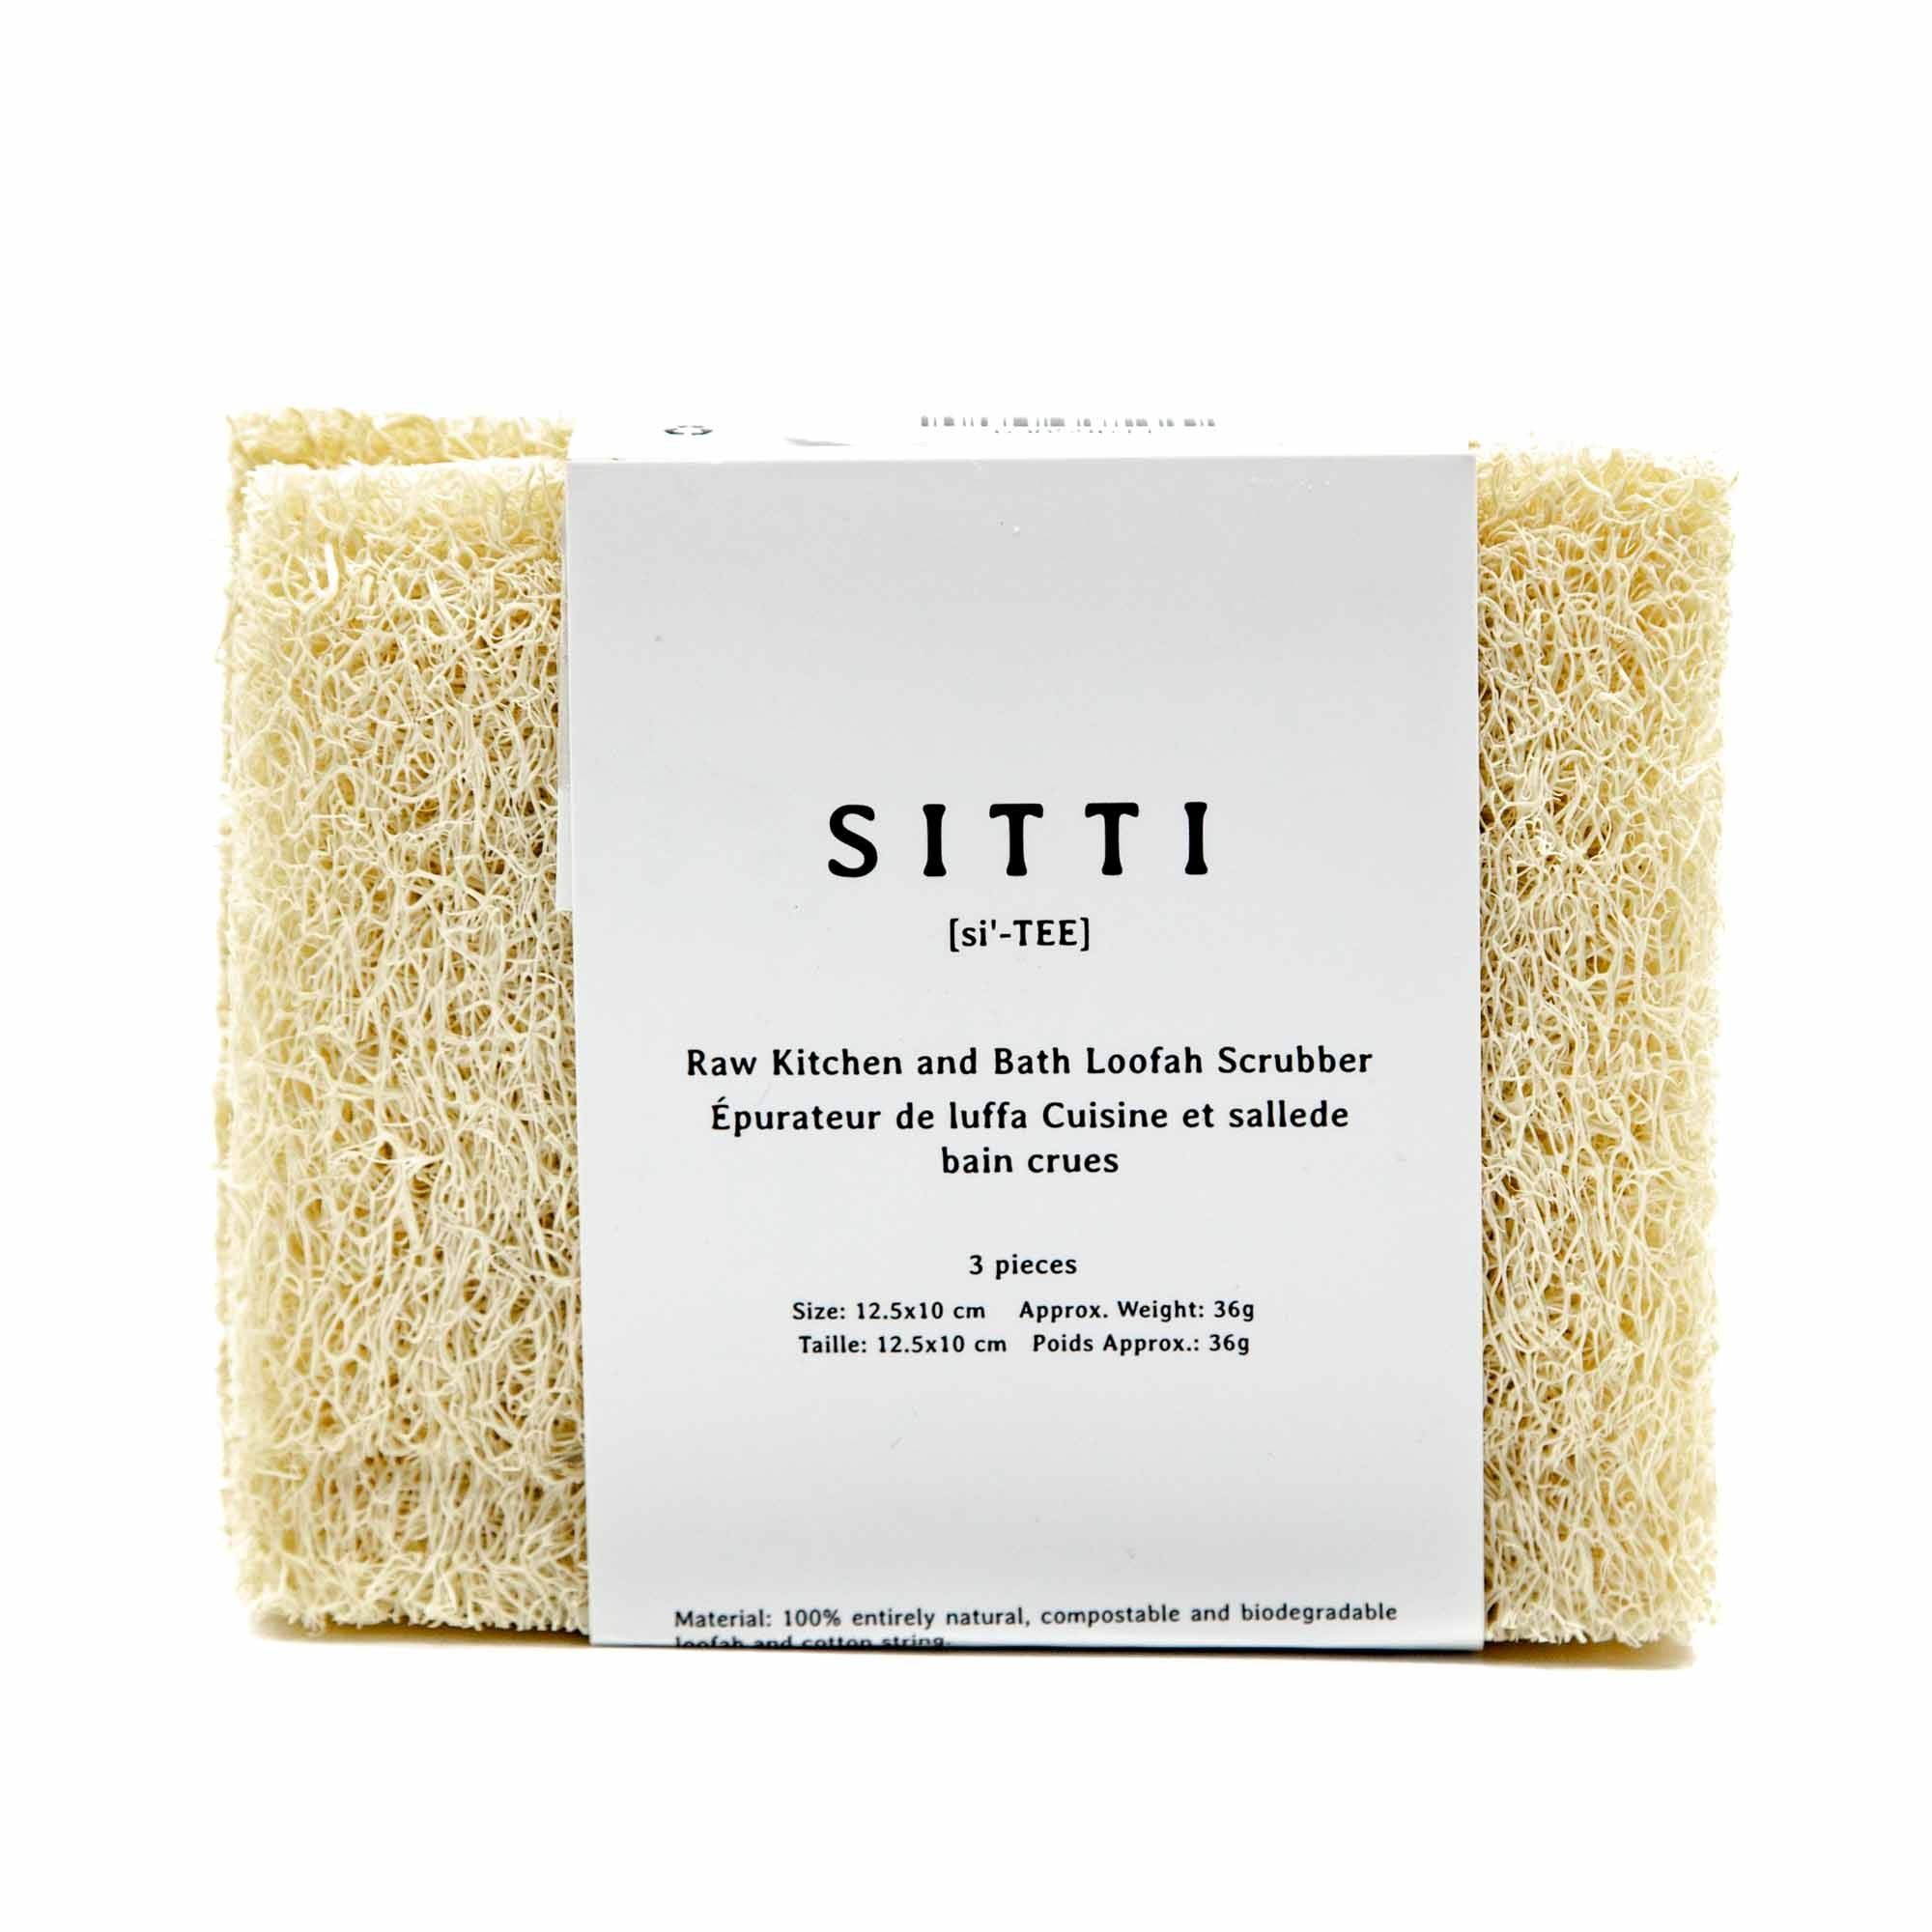 Sitti Raw Kitchen and Bath Natural Loofah Scrubber - Set of 3 - Mortise And Tenon